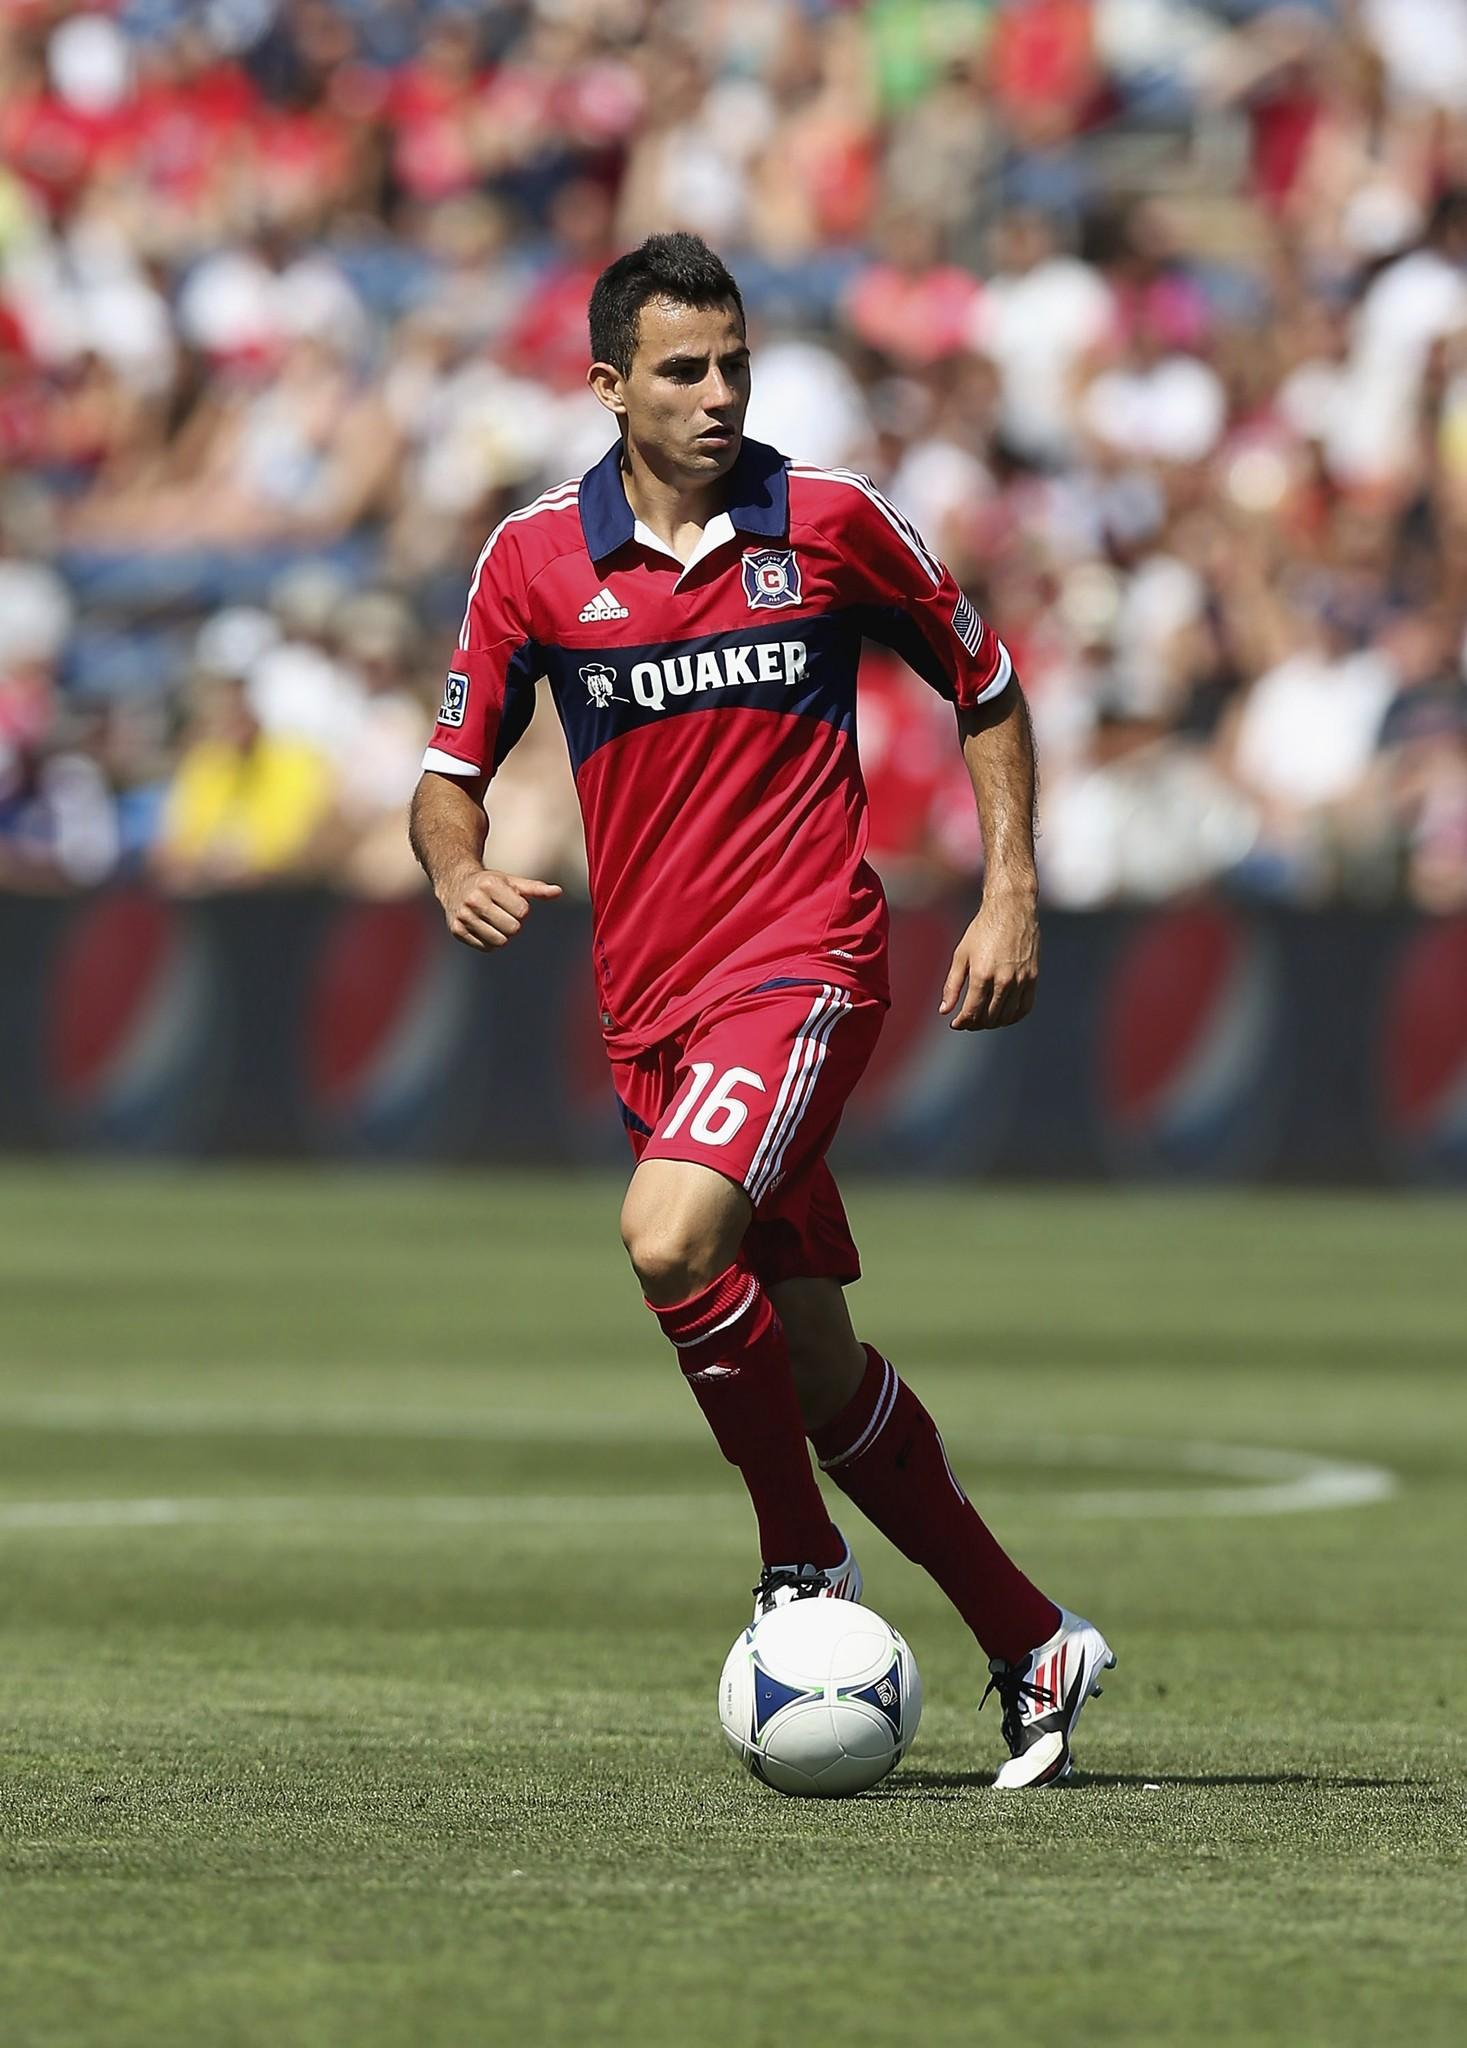 Marco Pappa is returning to MLS, but not likely to Chicago.